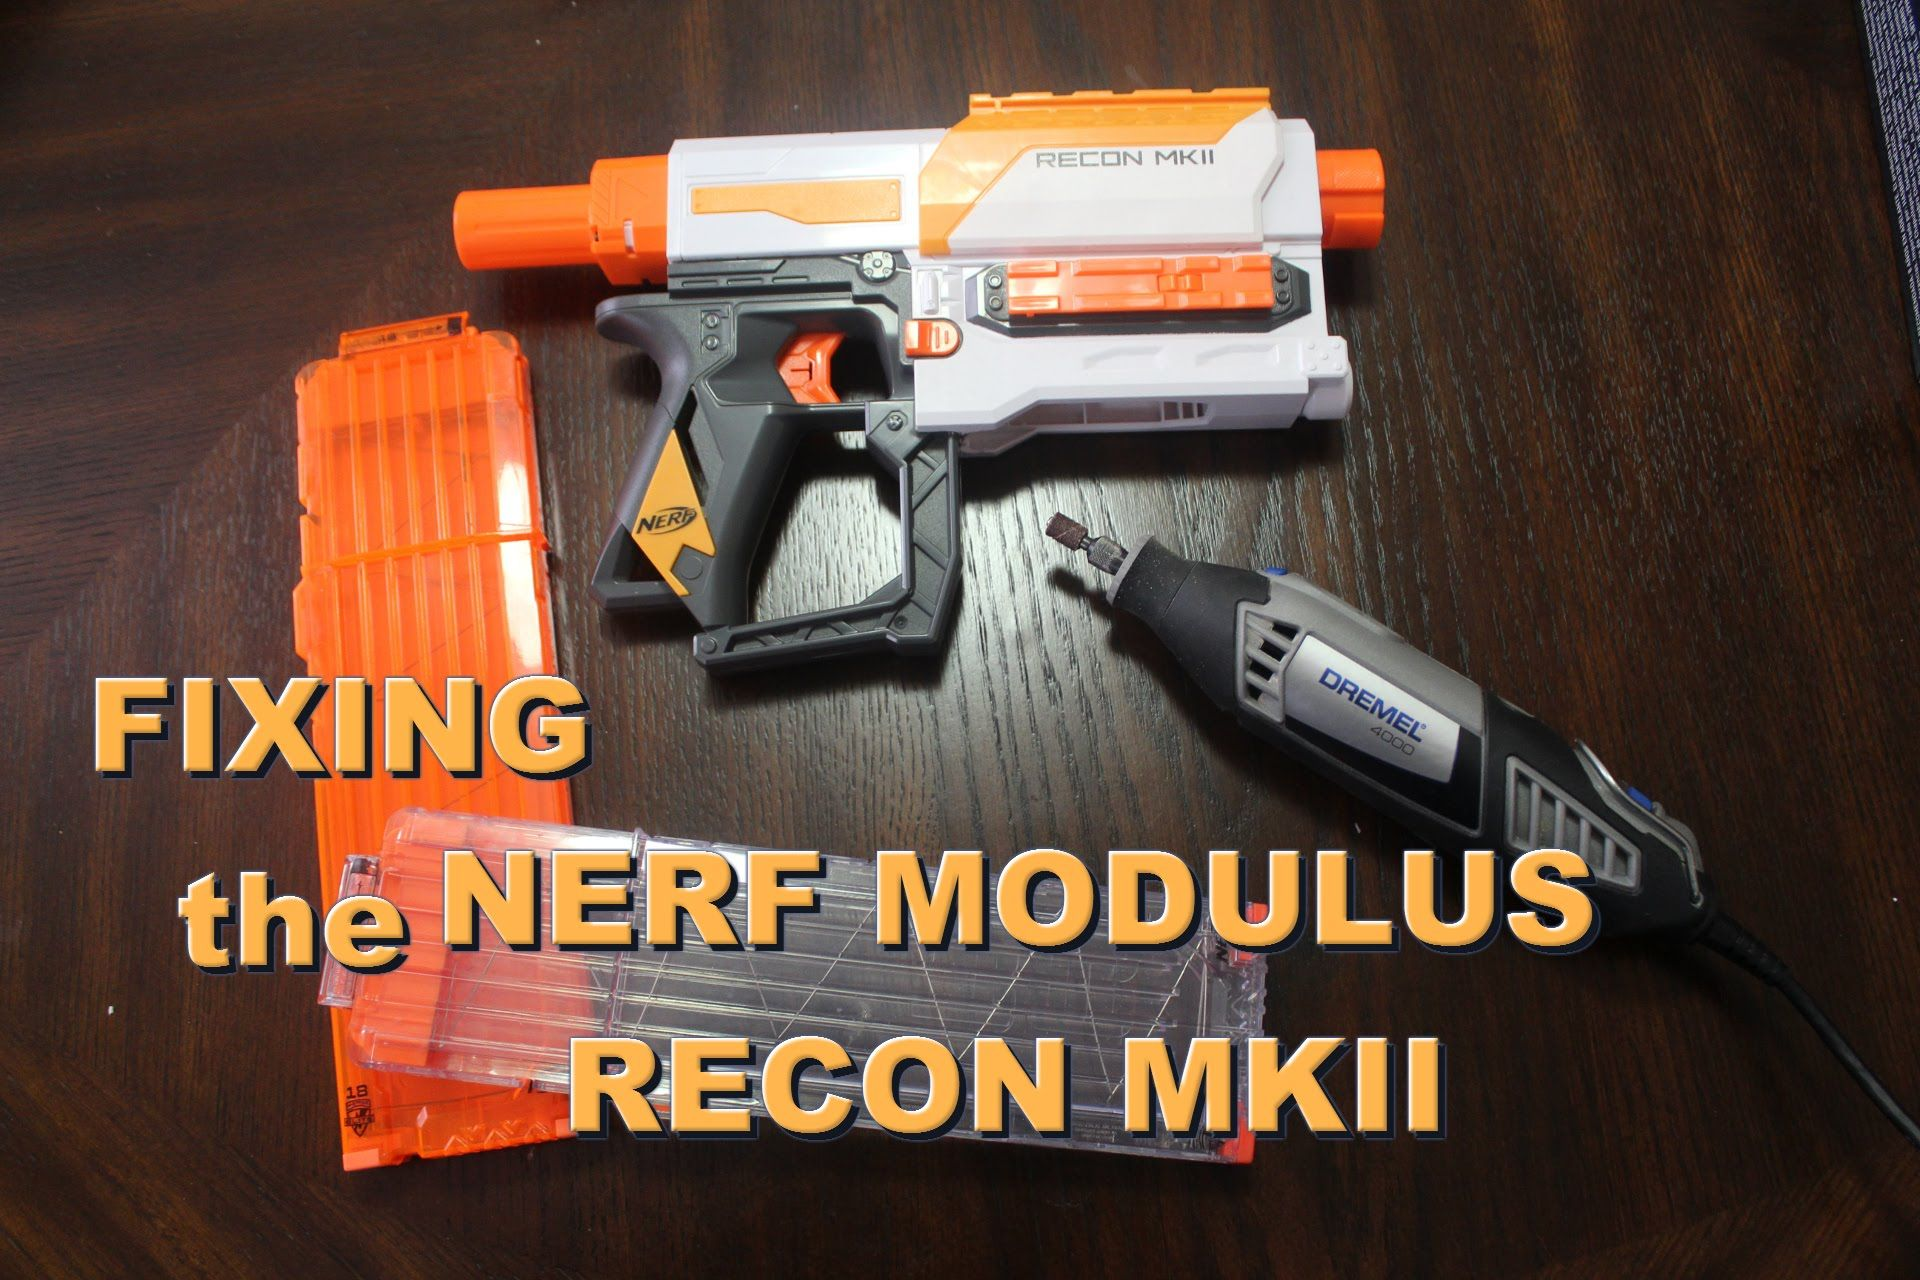 Here today, we will be doing a quick functional mod to fix the Nerf Modulus